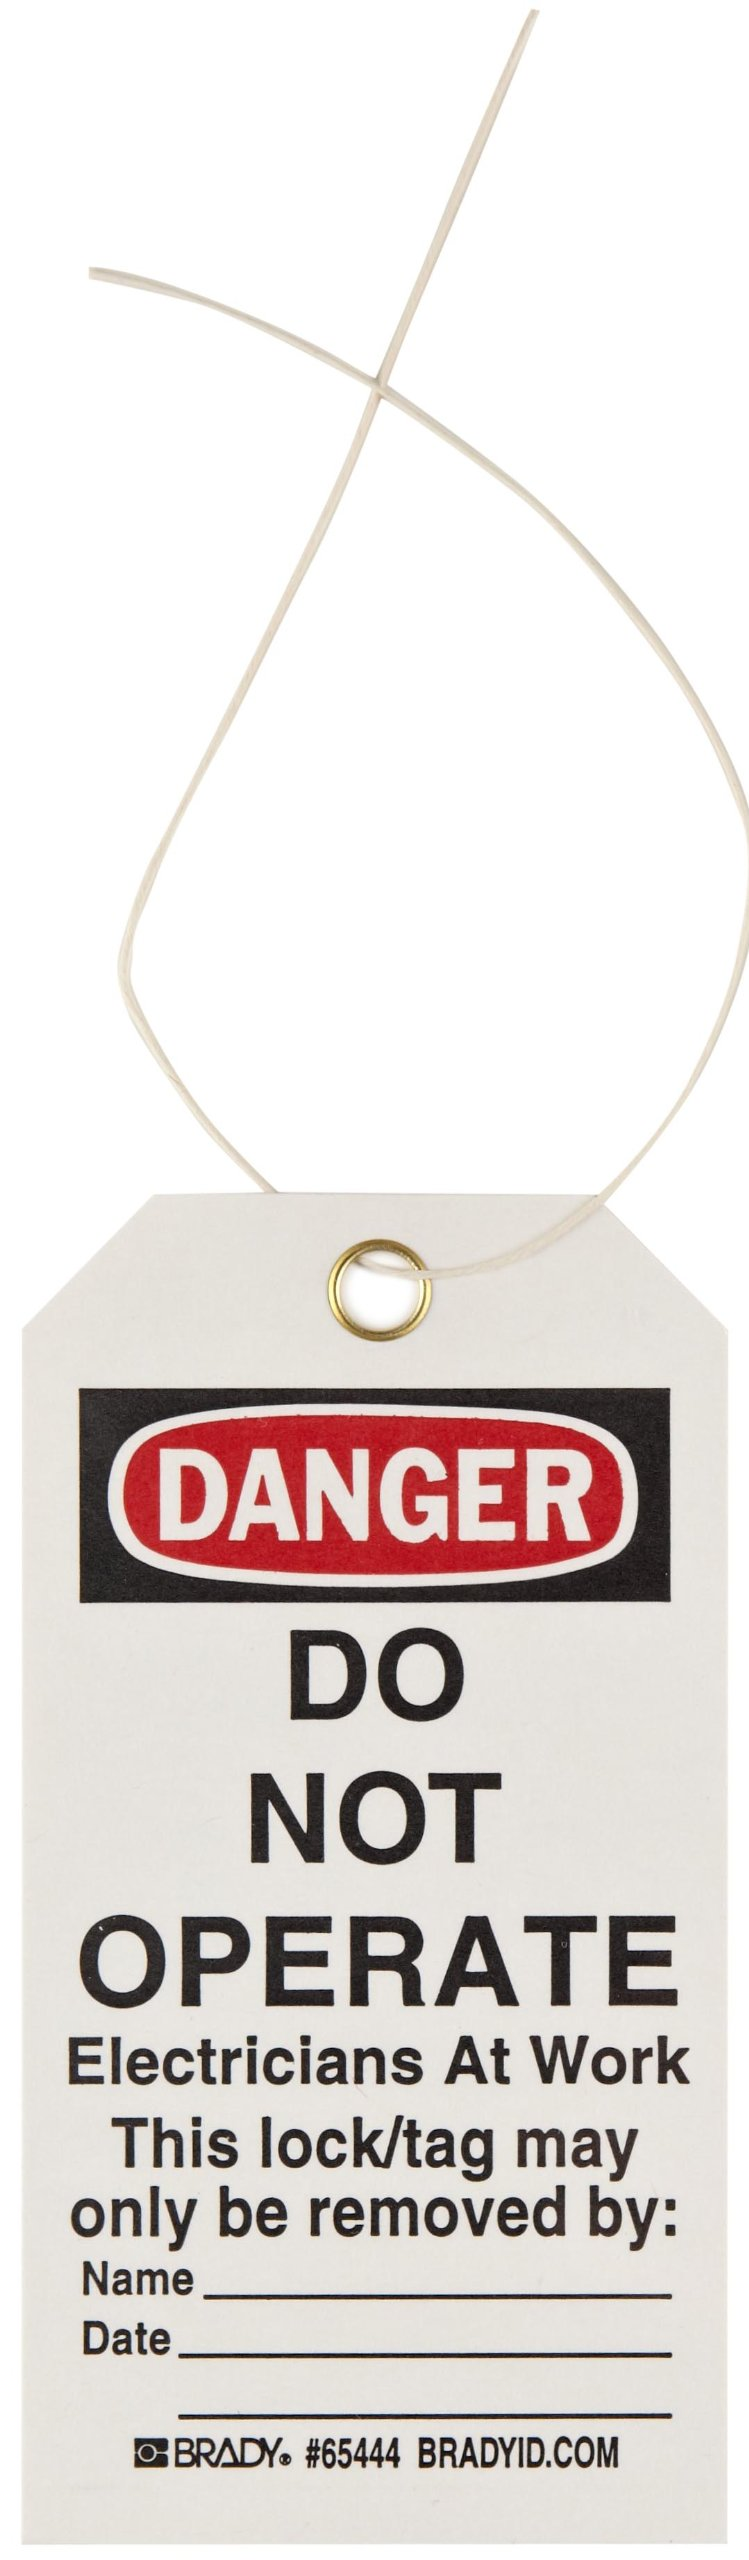 Brady''Danger - Do Not Operate - Electricians at Work - Only the Individual.'' Tag, Cardstock, 5-3/4'' Height, 3'' Width (Pack of 25)